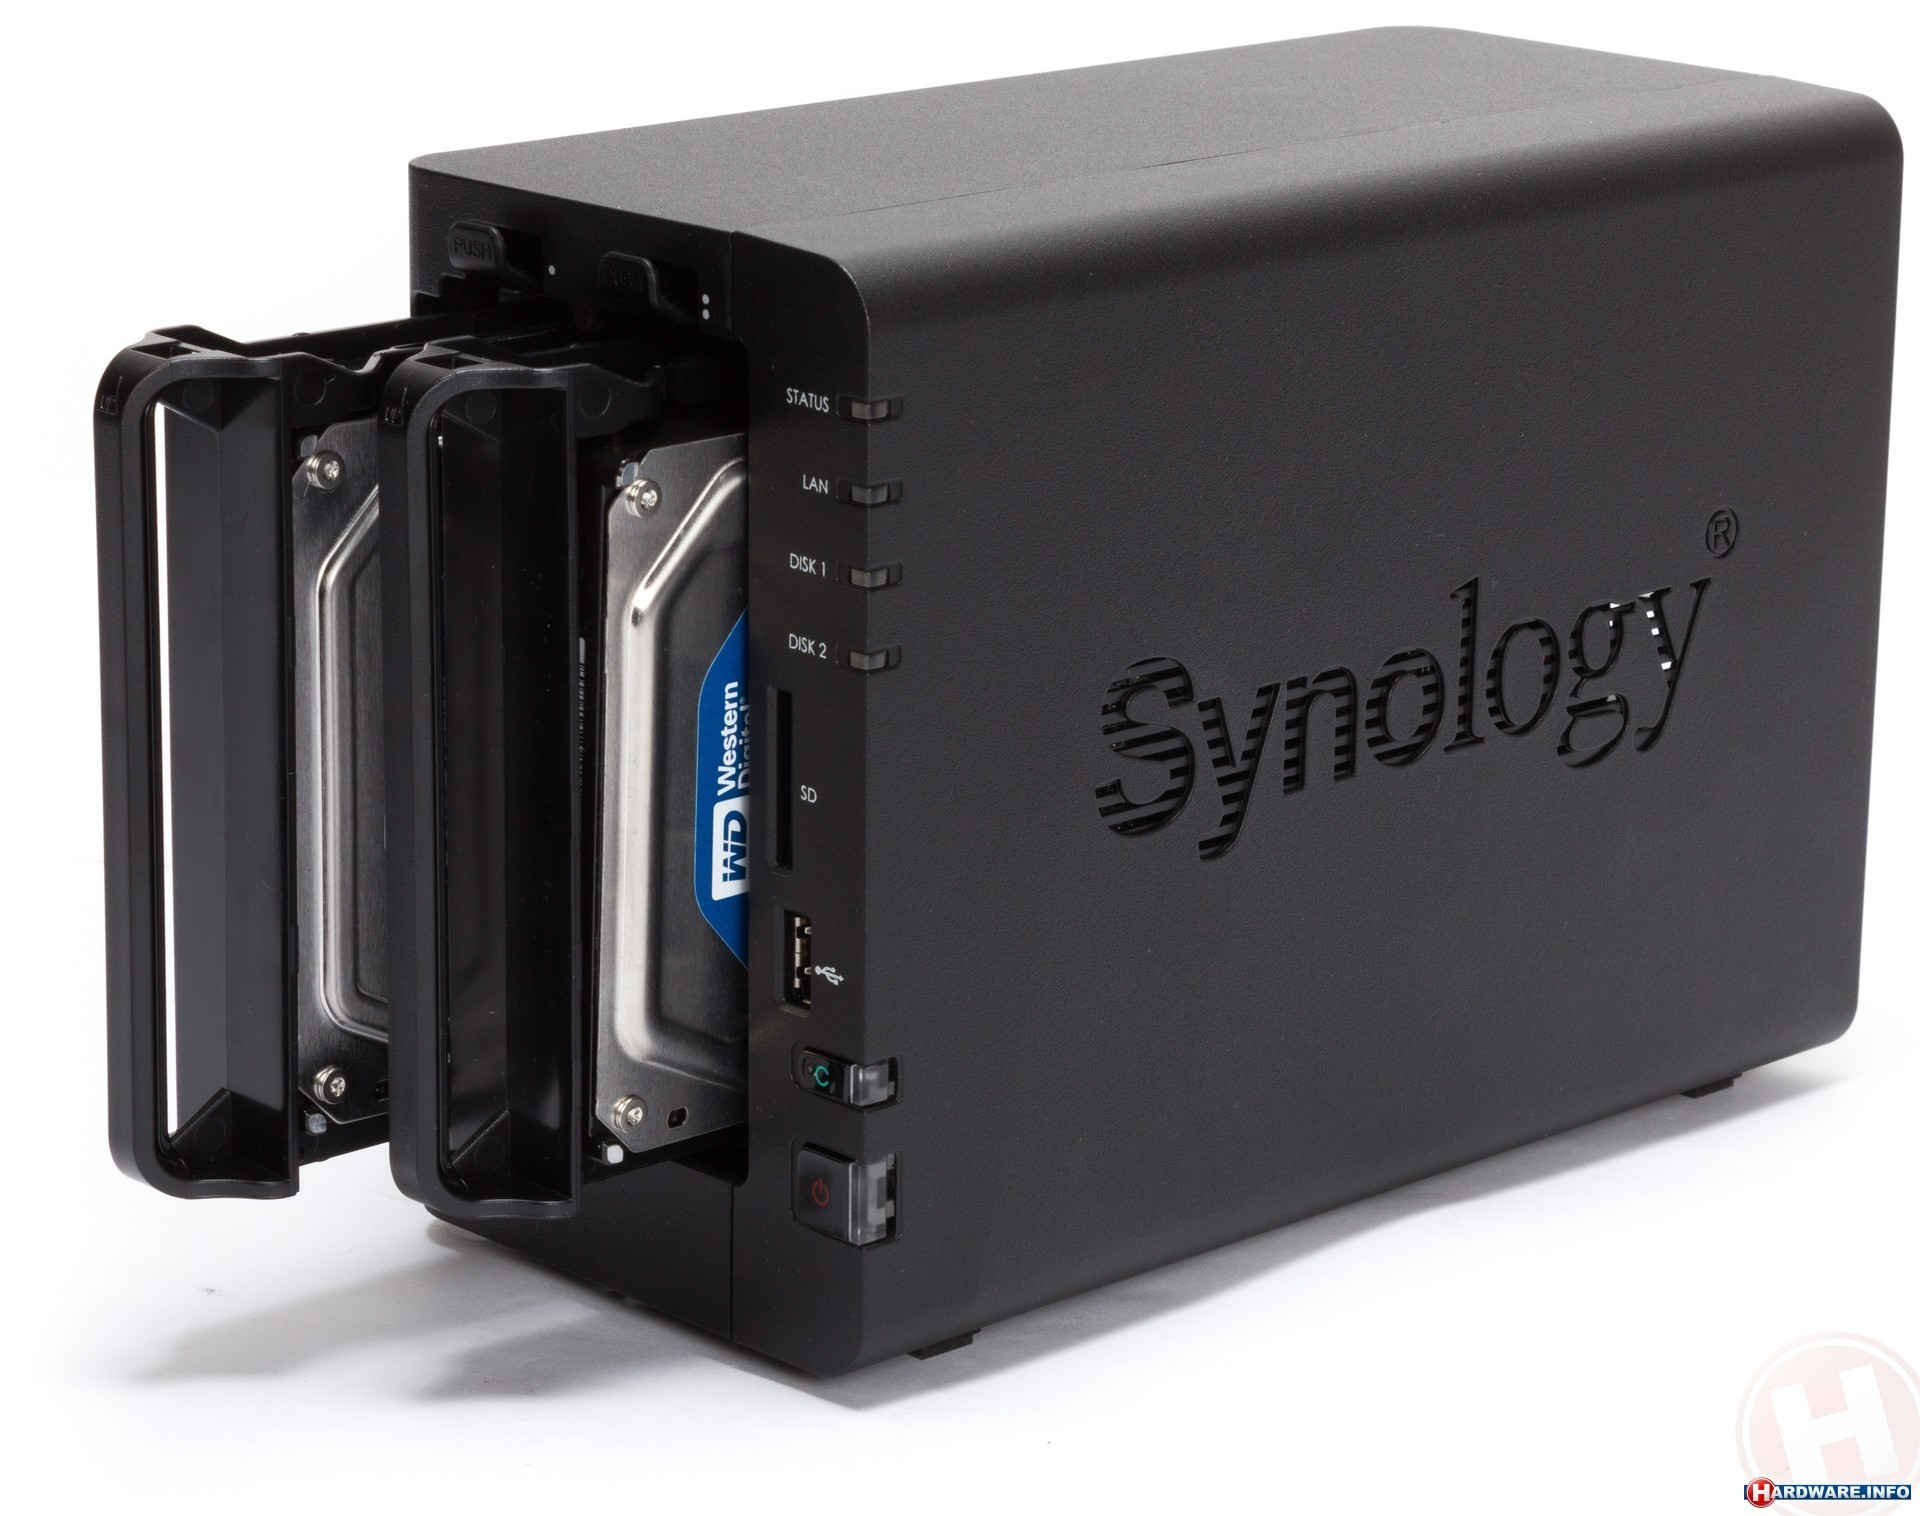 The license key for Twonky Server 8.x for Synology